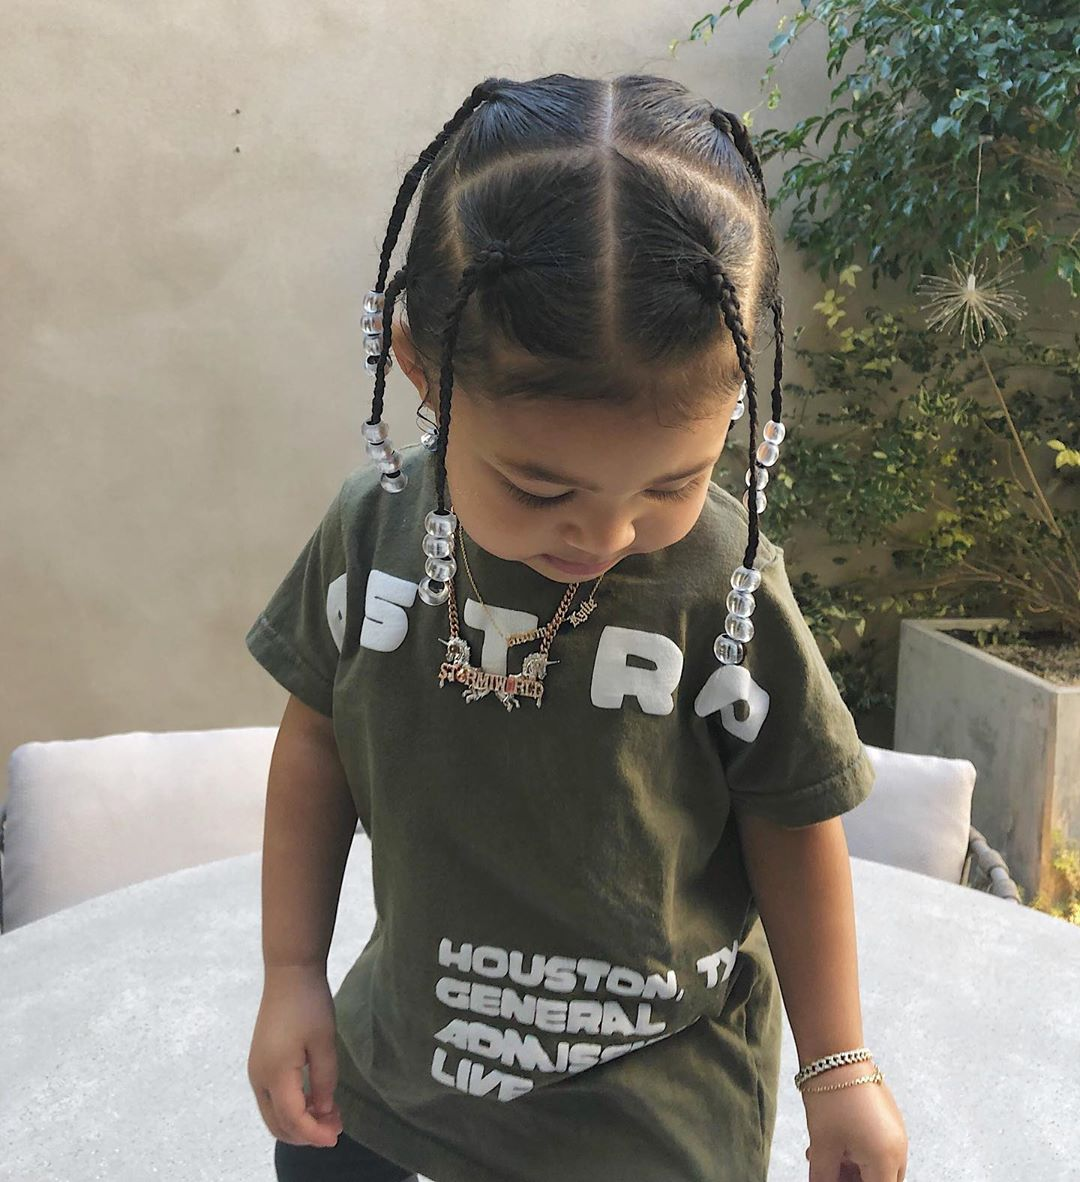 Travis Scott and Kylie Jenner's daughter Stormi Webster rocks braids just like her rapper dad; See Pic